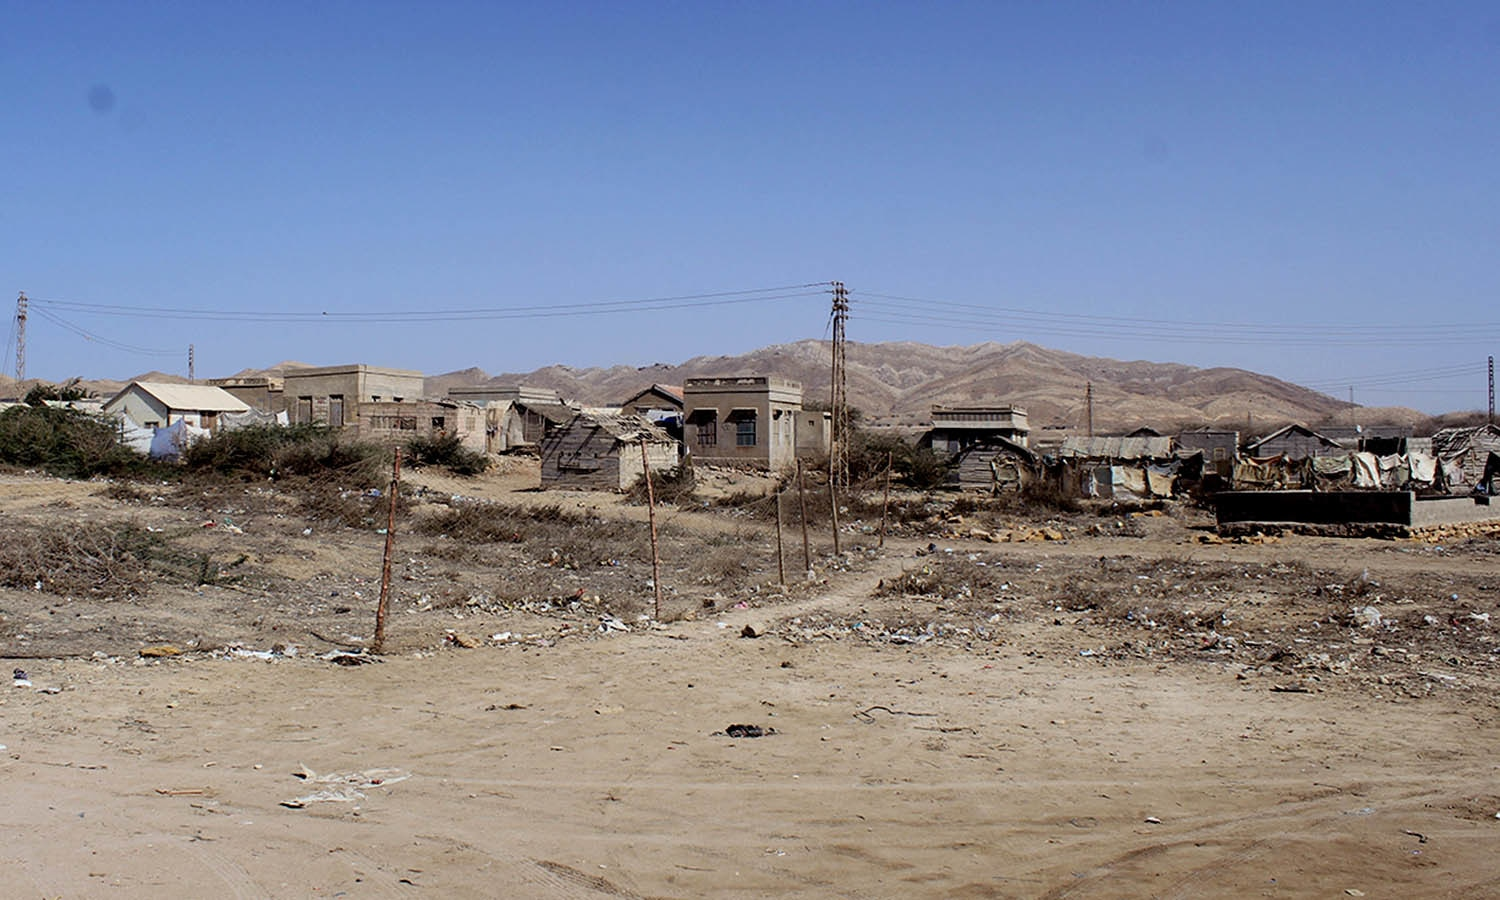 Mubarak Village's residents live with zero facilities. —Photo by the author